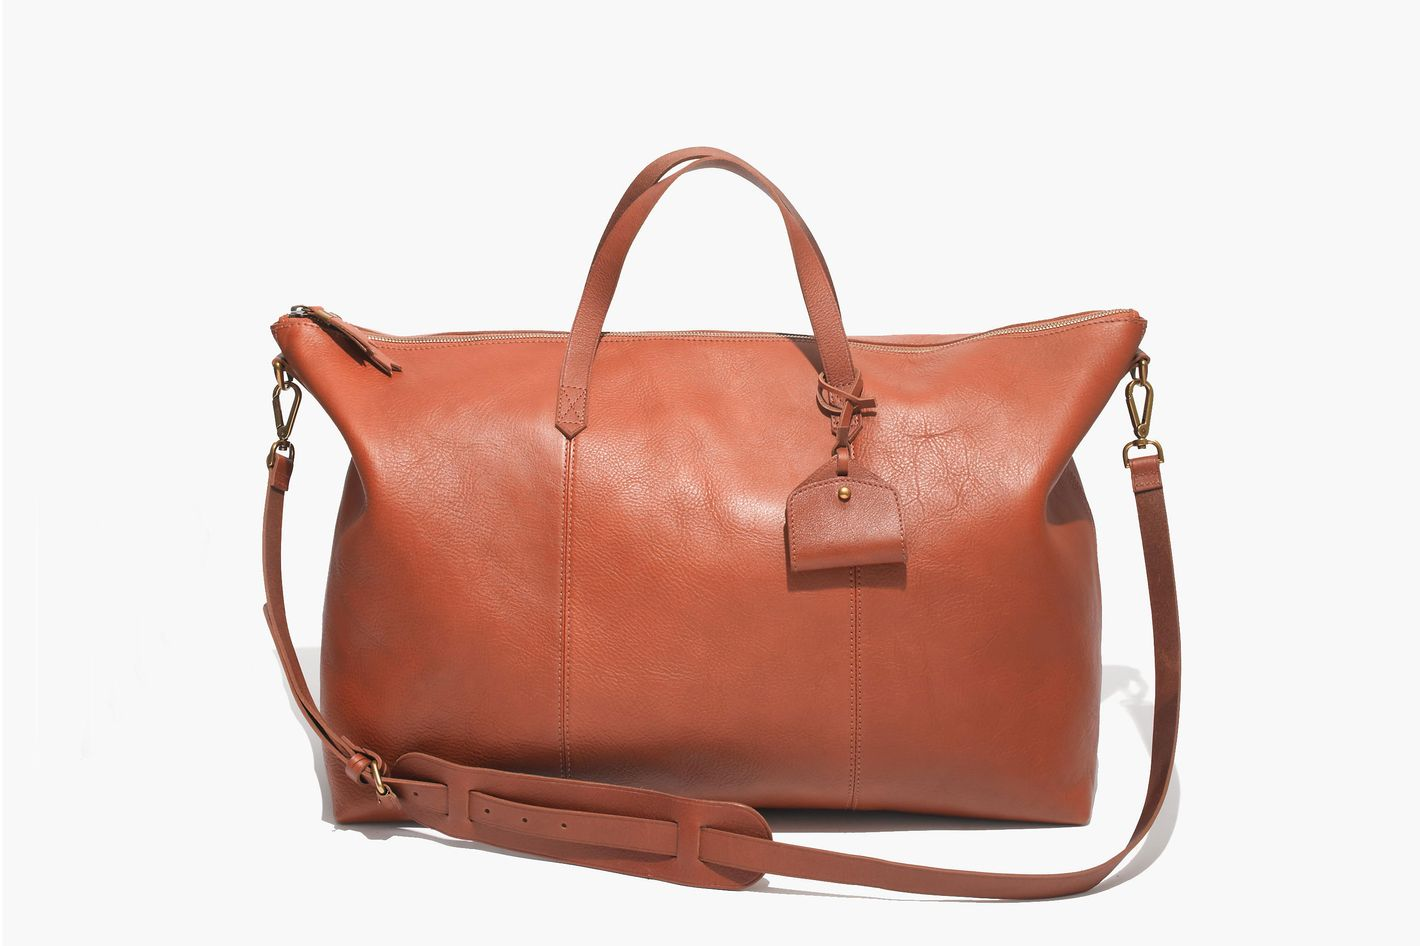 The 15 Best Weekender Bags for Women 2018 1079c6cfedd85